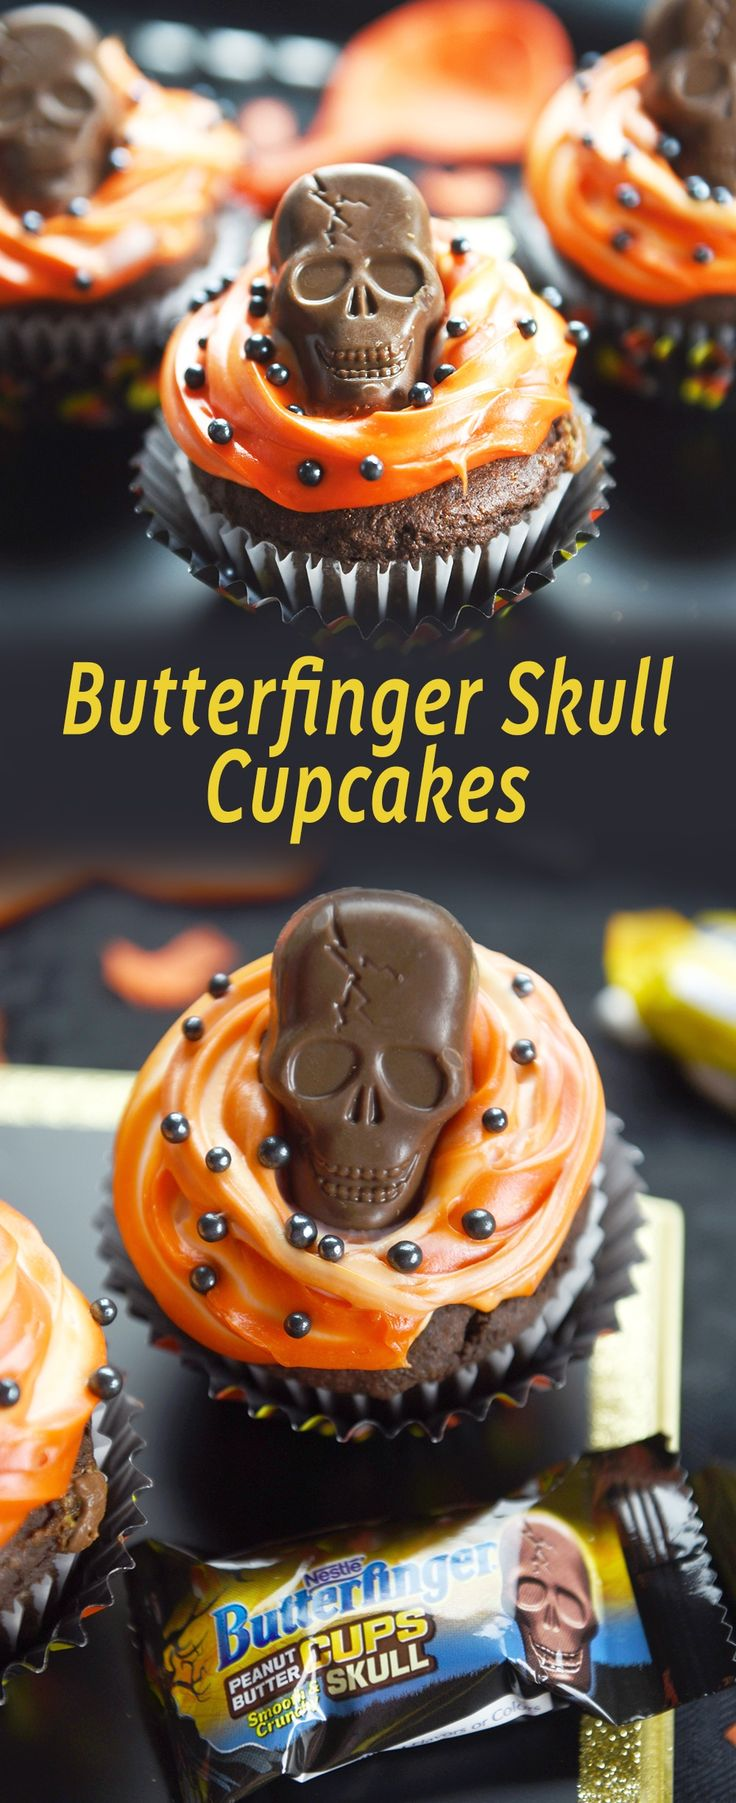 These Butterfinger Skull Cupcakes have a taste of Butterfinger inside and are topped with a creamy Butterfinger Peanut Butter Skull Cups!   #ad https://ooh.li/87edd1c #TrickorButterfinger